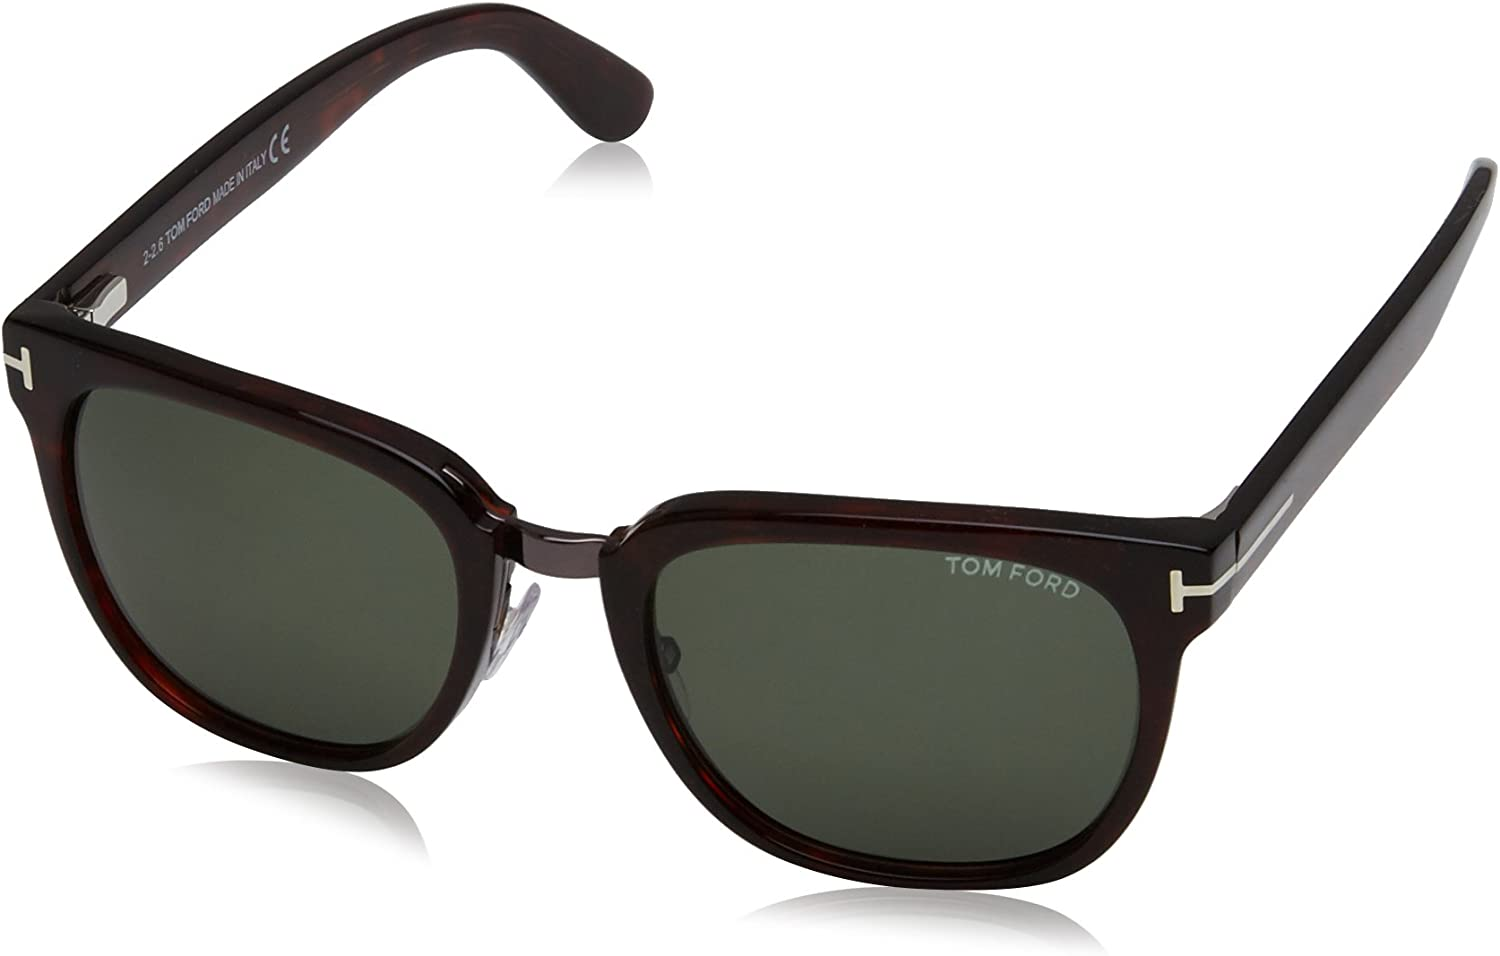 TALLA 55. Tom Ford Sonnenbrille Rock (FT0290)